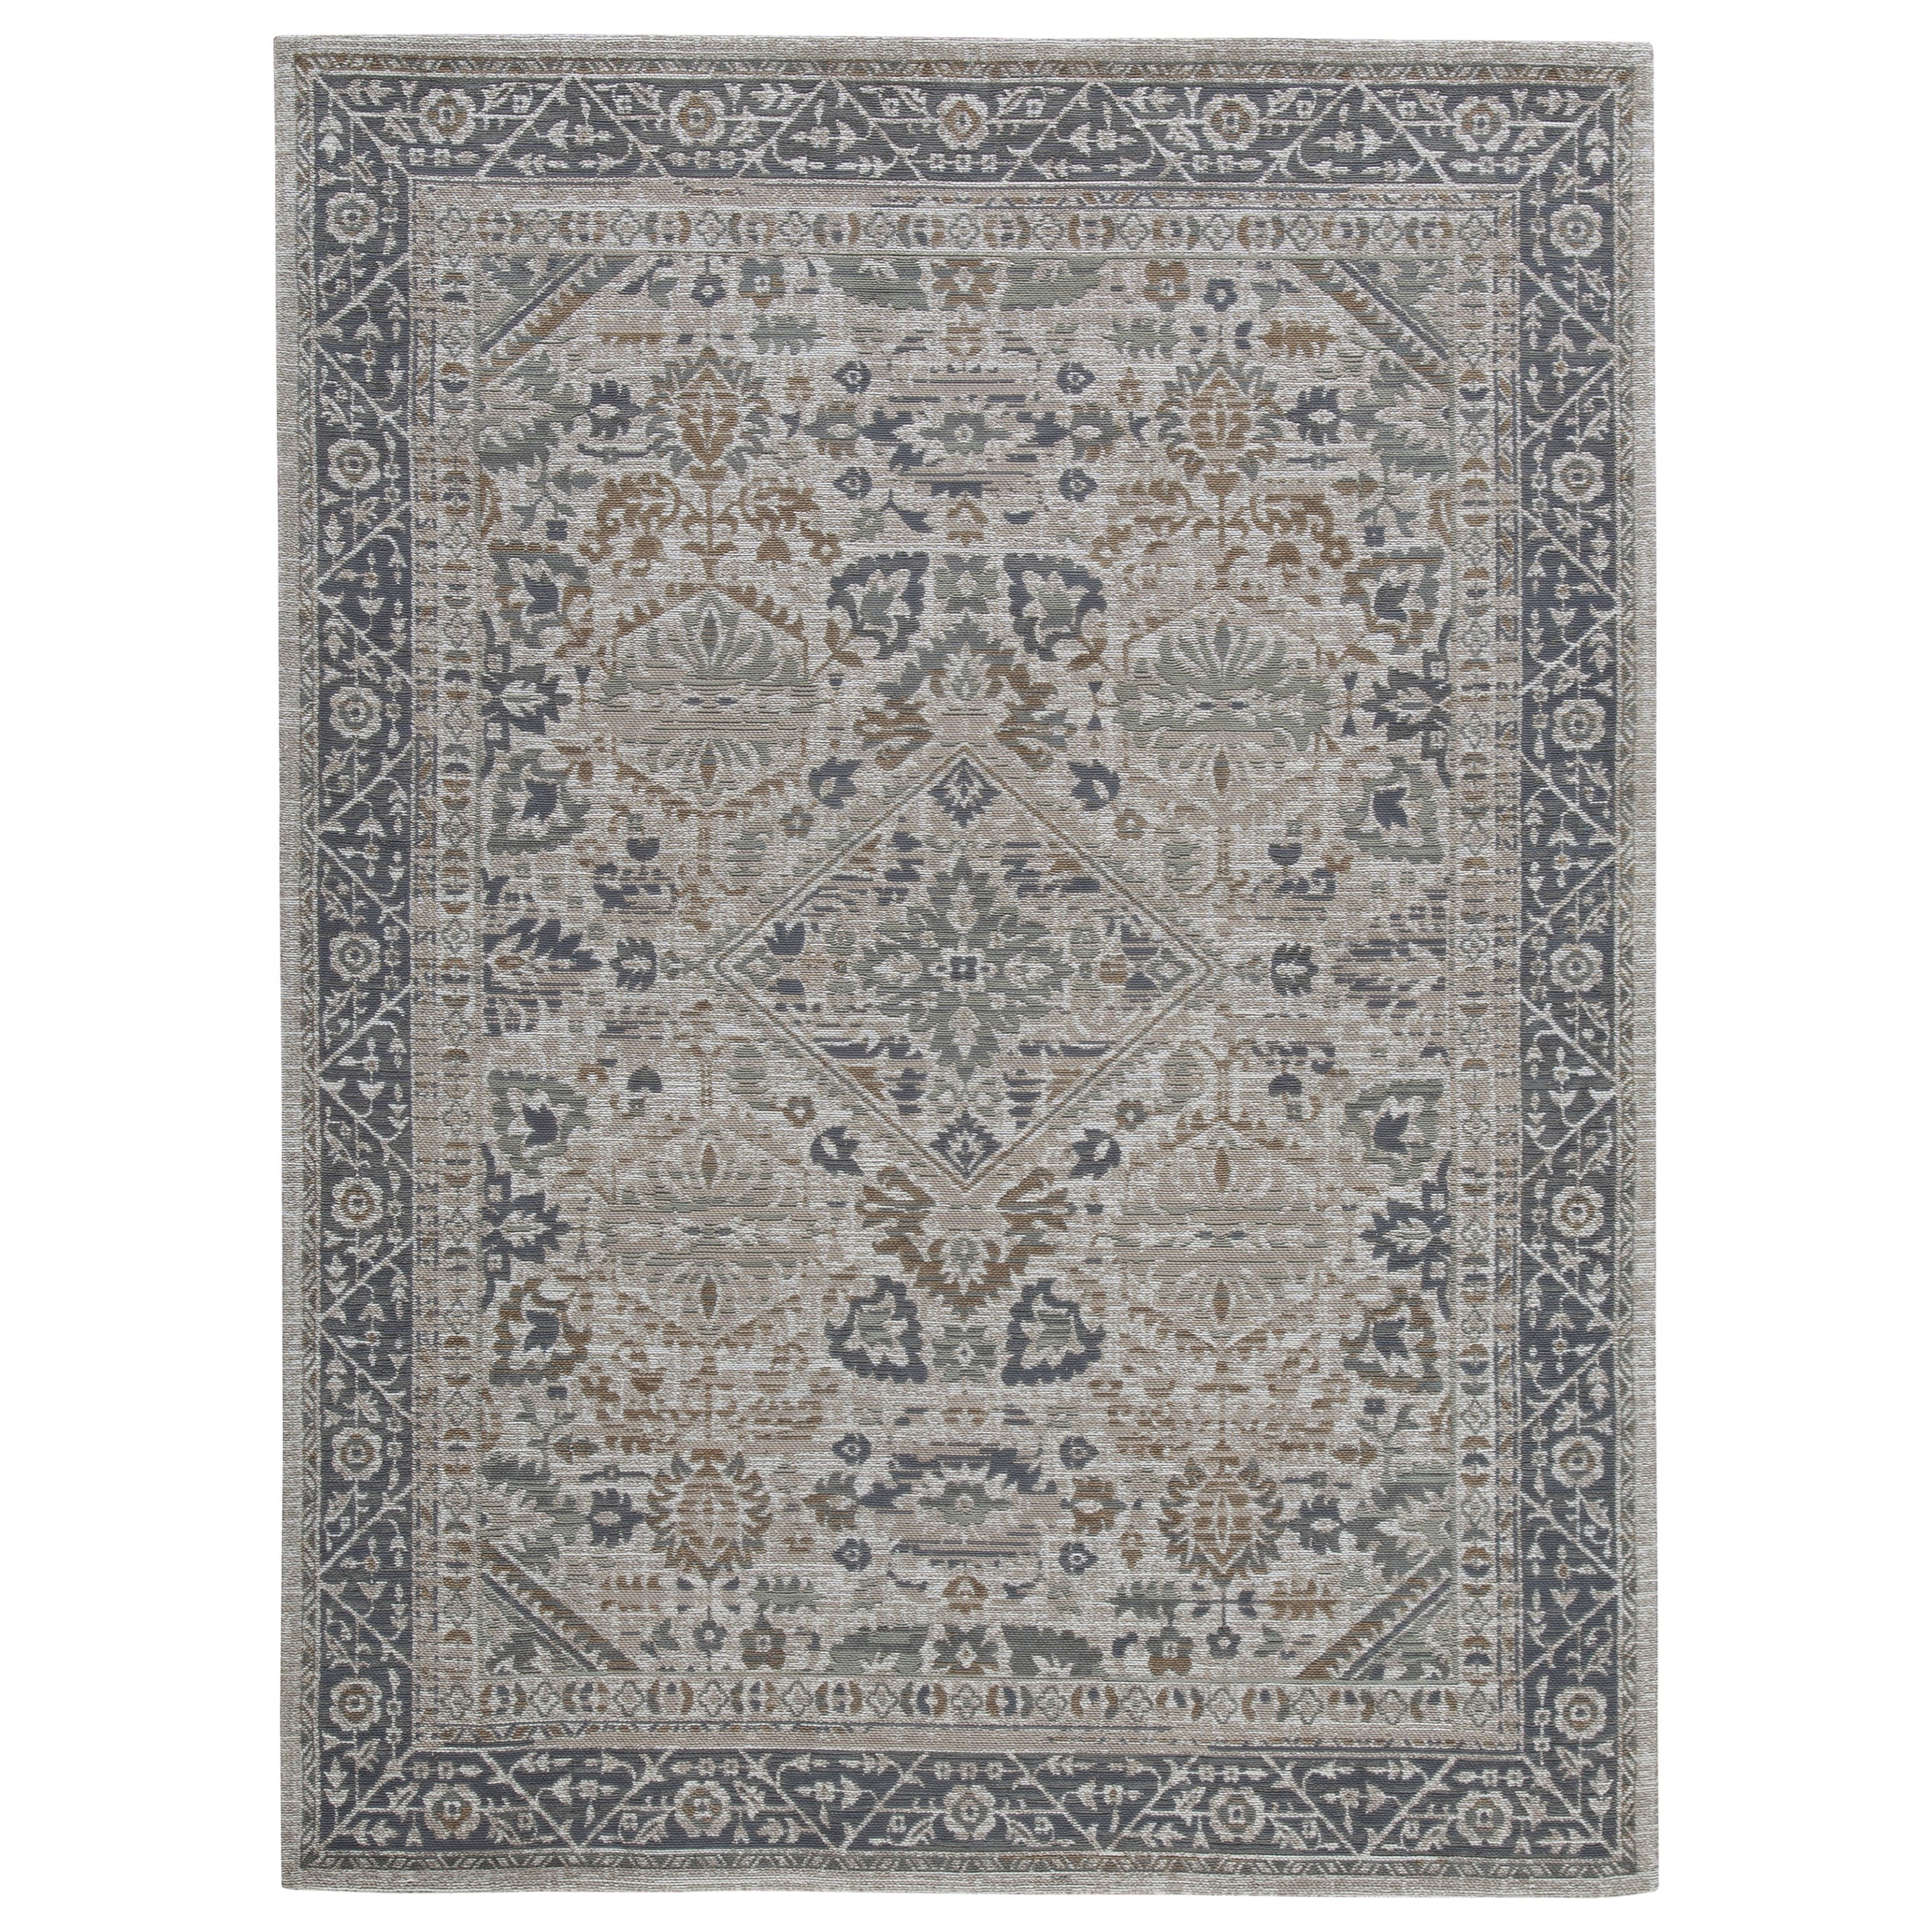 Traditional Classics Area Rugs Hetty Multi Large Rug by Signature Design by Ashley at Northeast Factory Direct